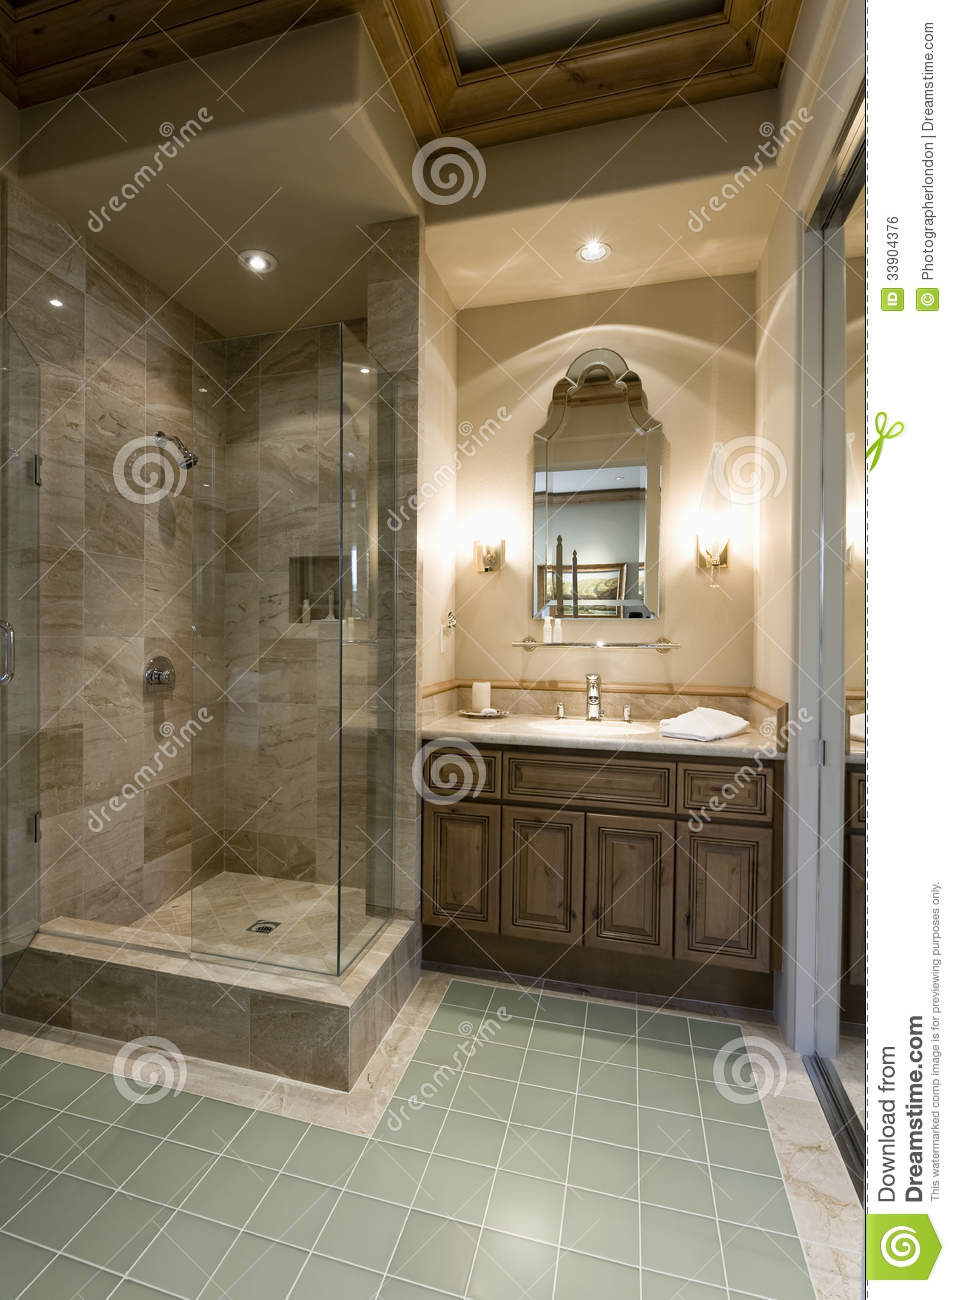 Modern Bathroom With Shower Cubicle Stock Photo - Image of glass ...